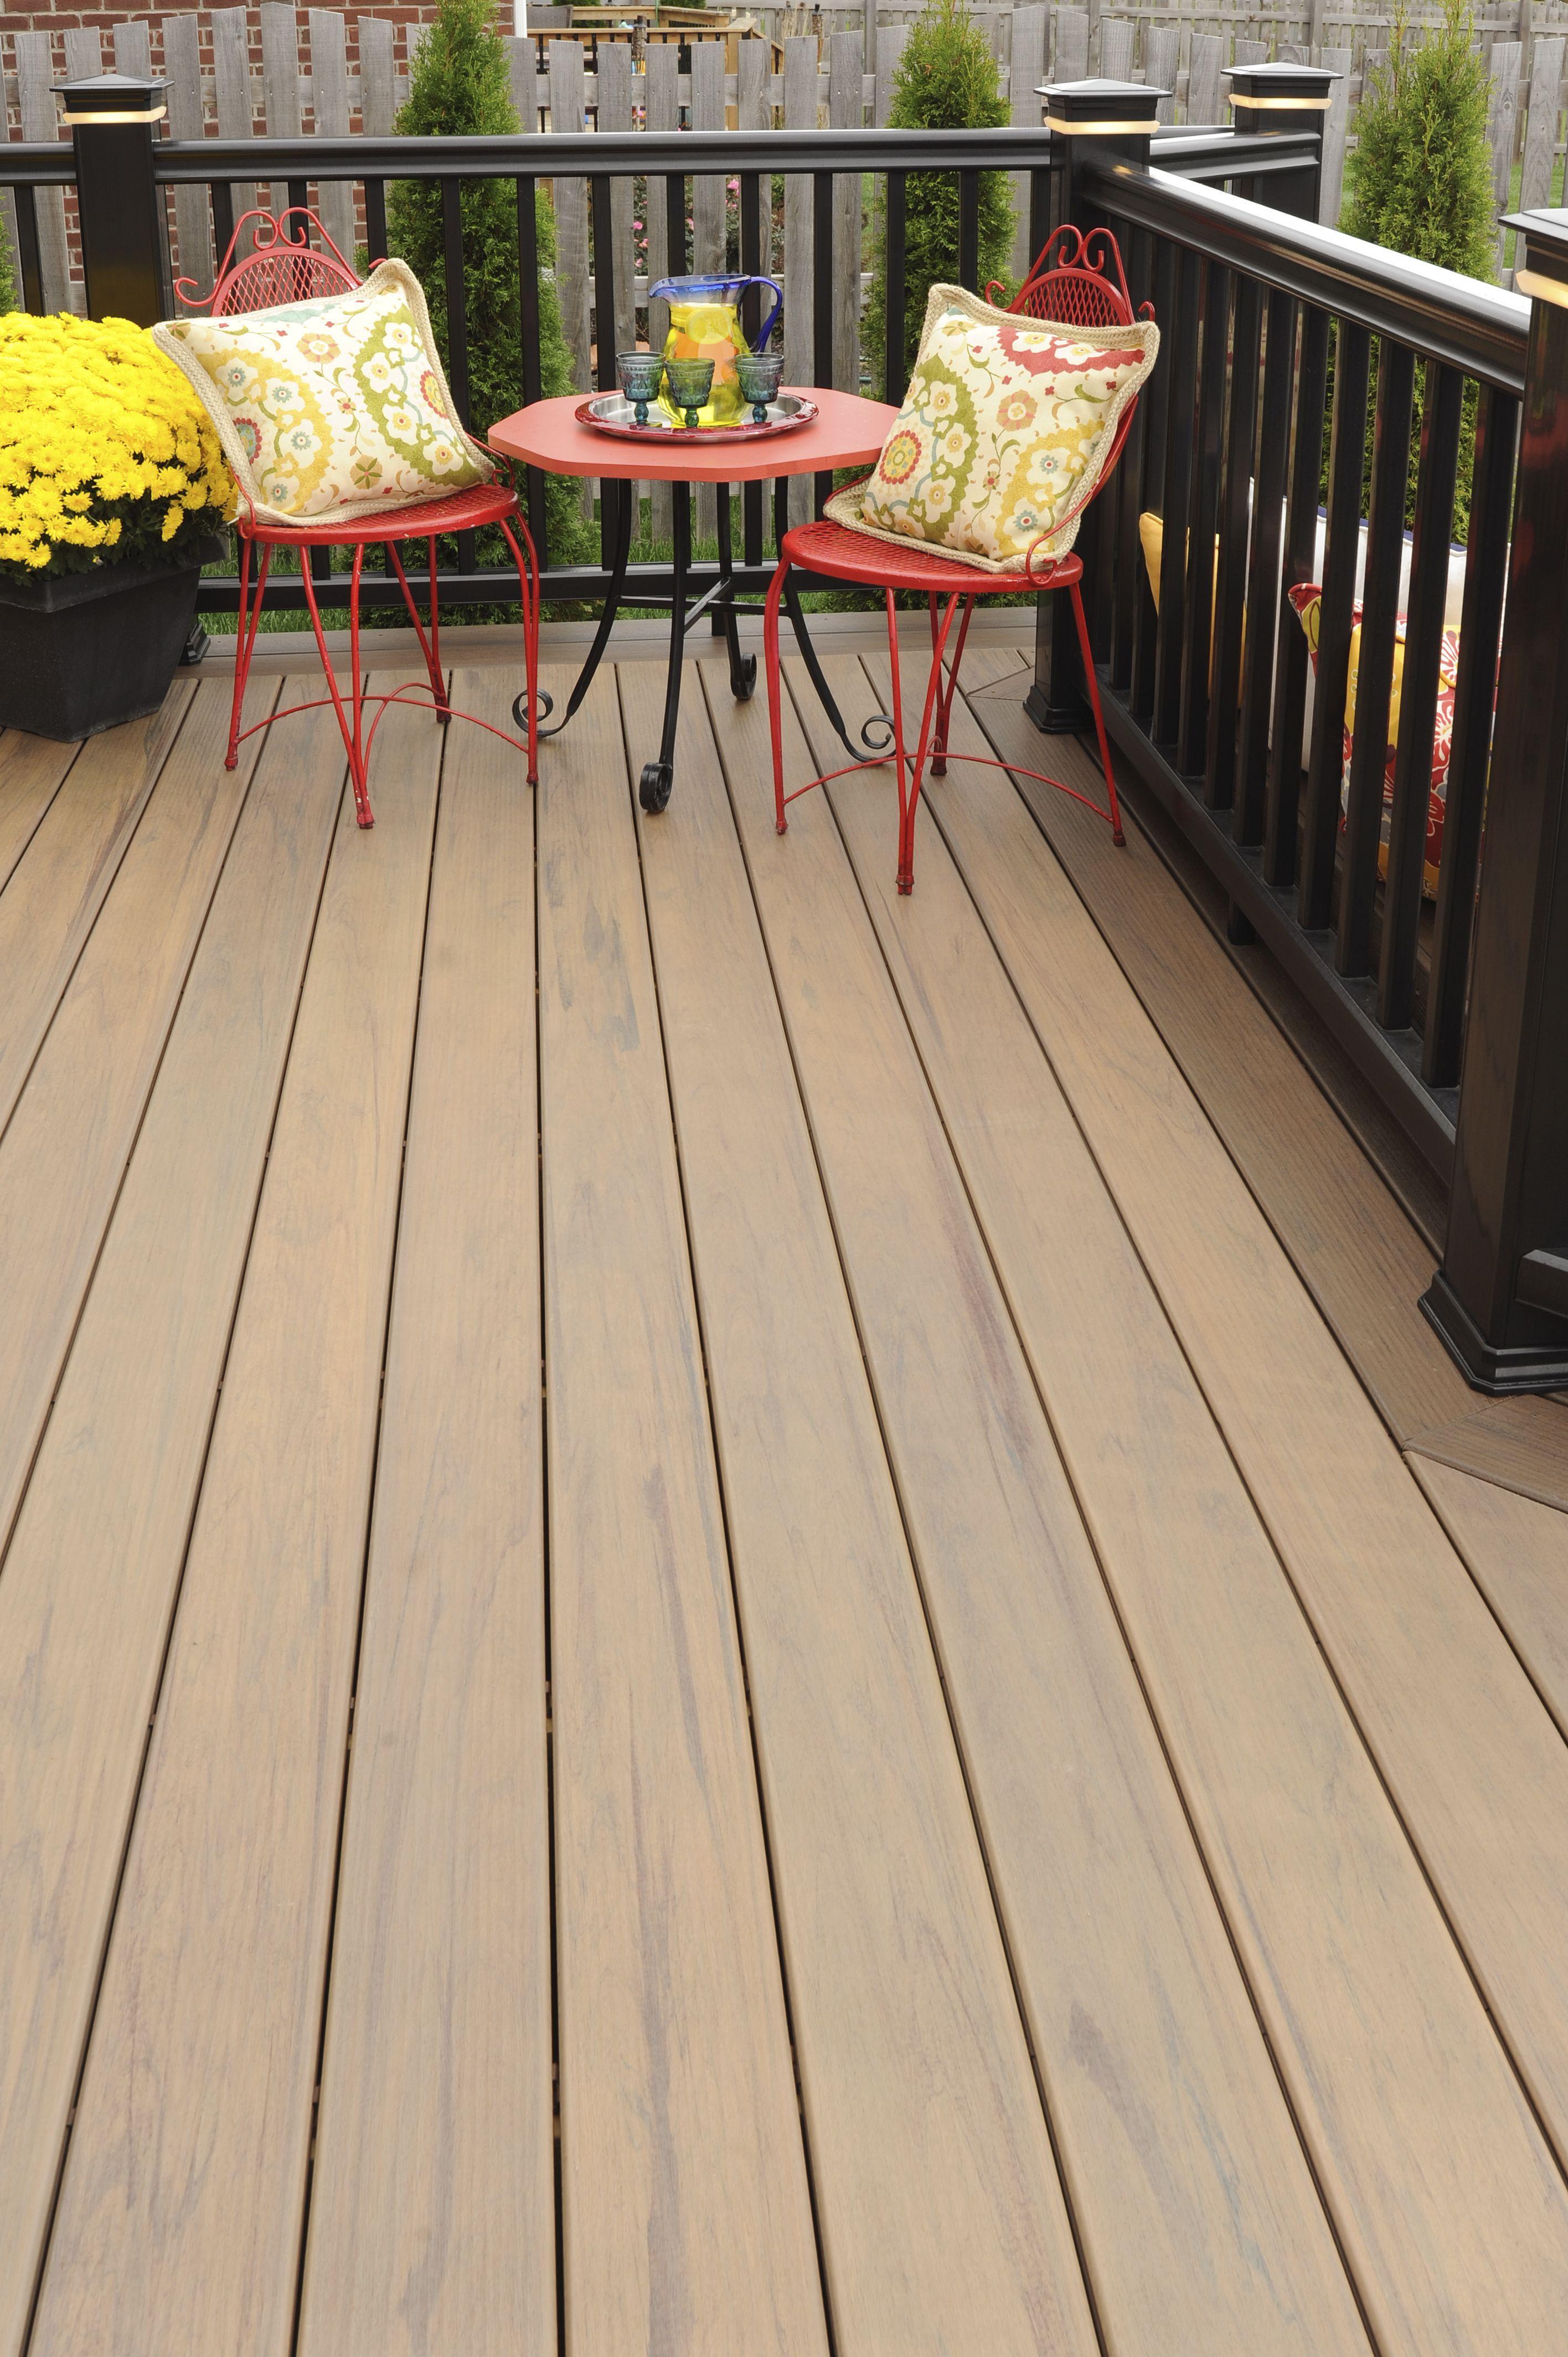 Traditional Americana Styling Paired With Timbertech